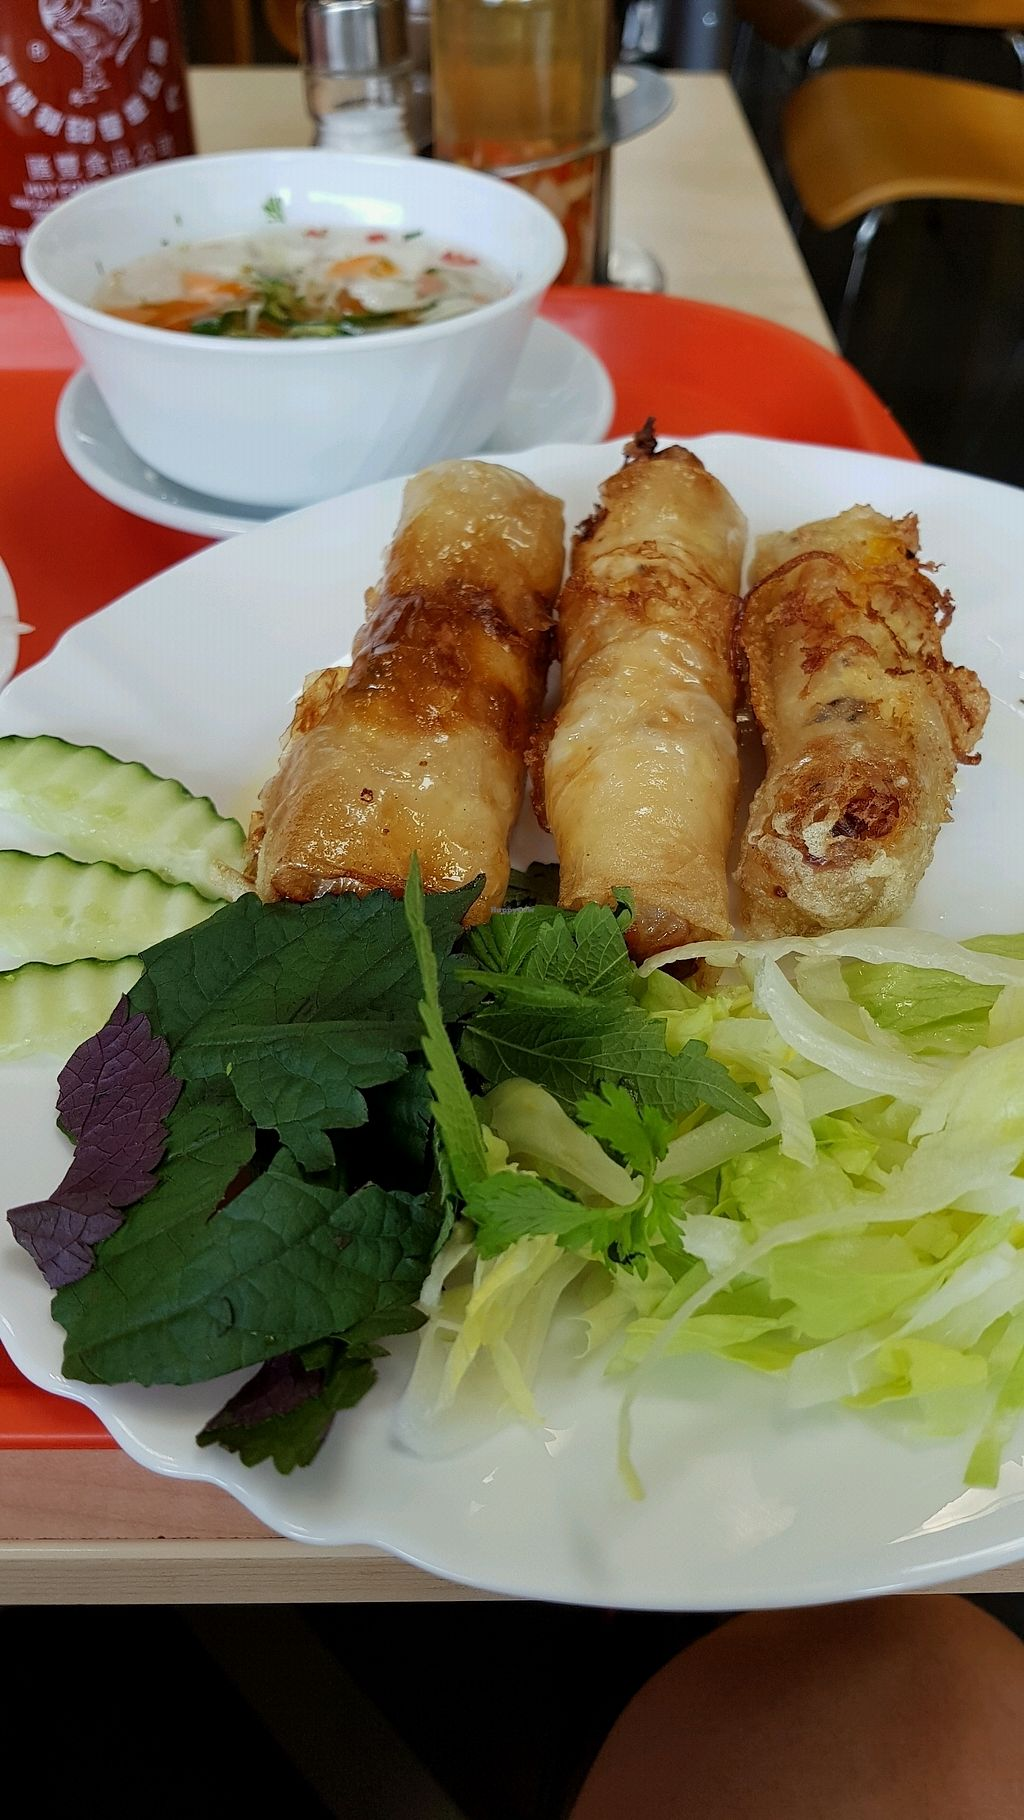 """Photo of Bang Tofu  by <a href=""""/members/profile/LukasBelicka"""">LukasBelicka</a> <br/>spring rolls <br/> November 9, 2017  - <a href='/contact/abuse/image/104657/323721'>Report</a>"""